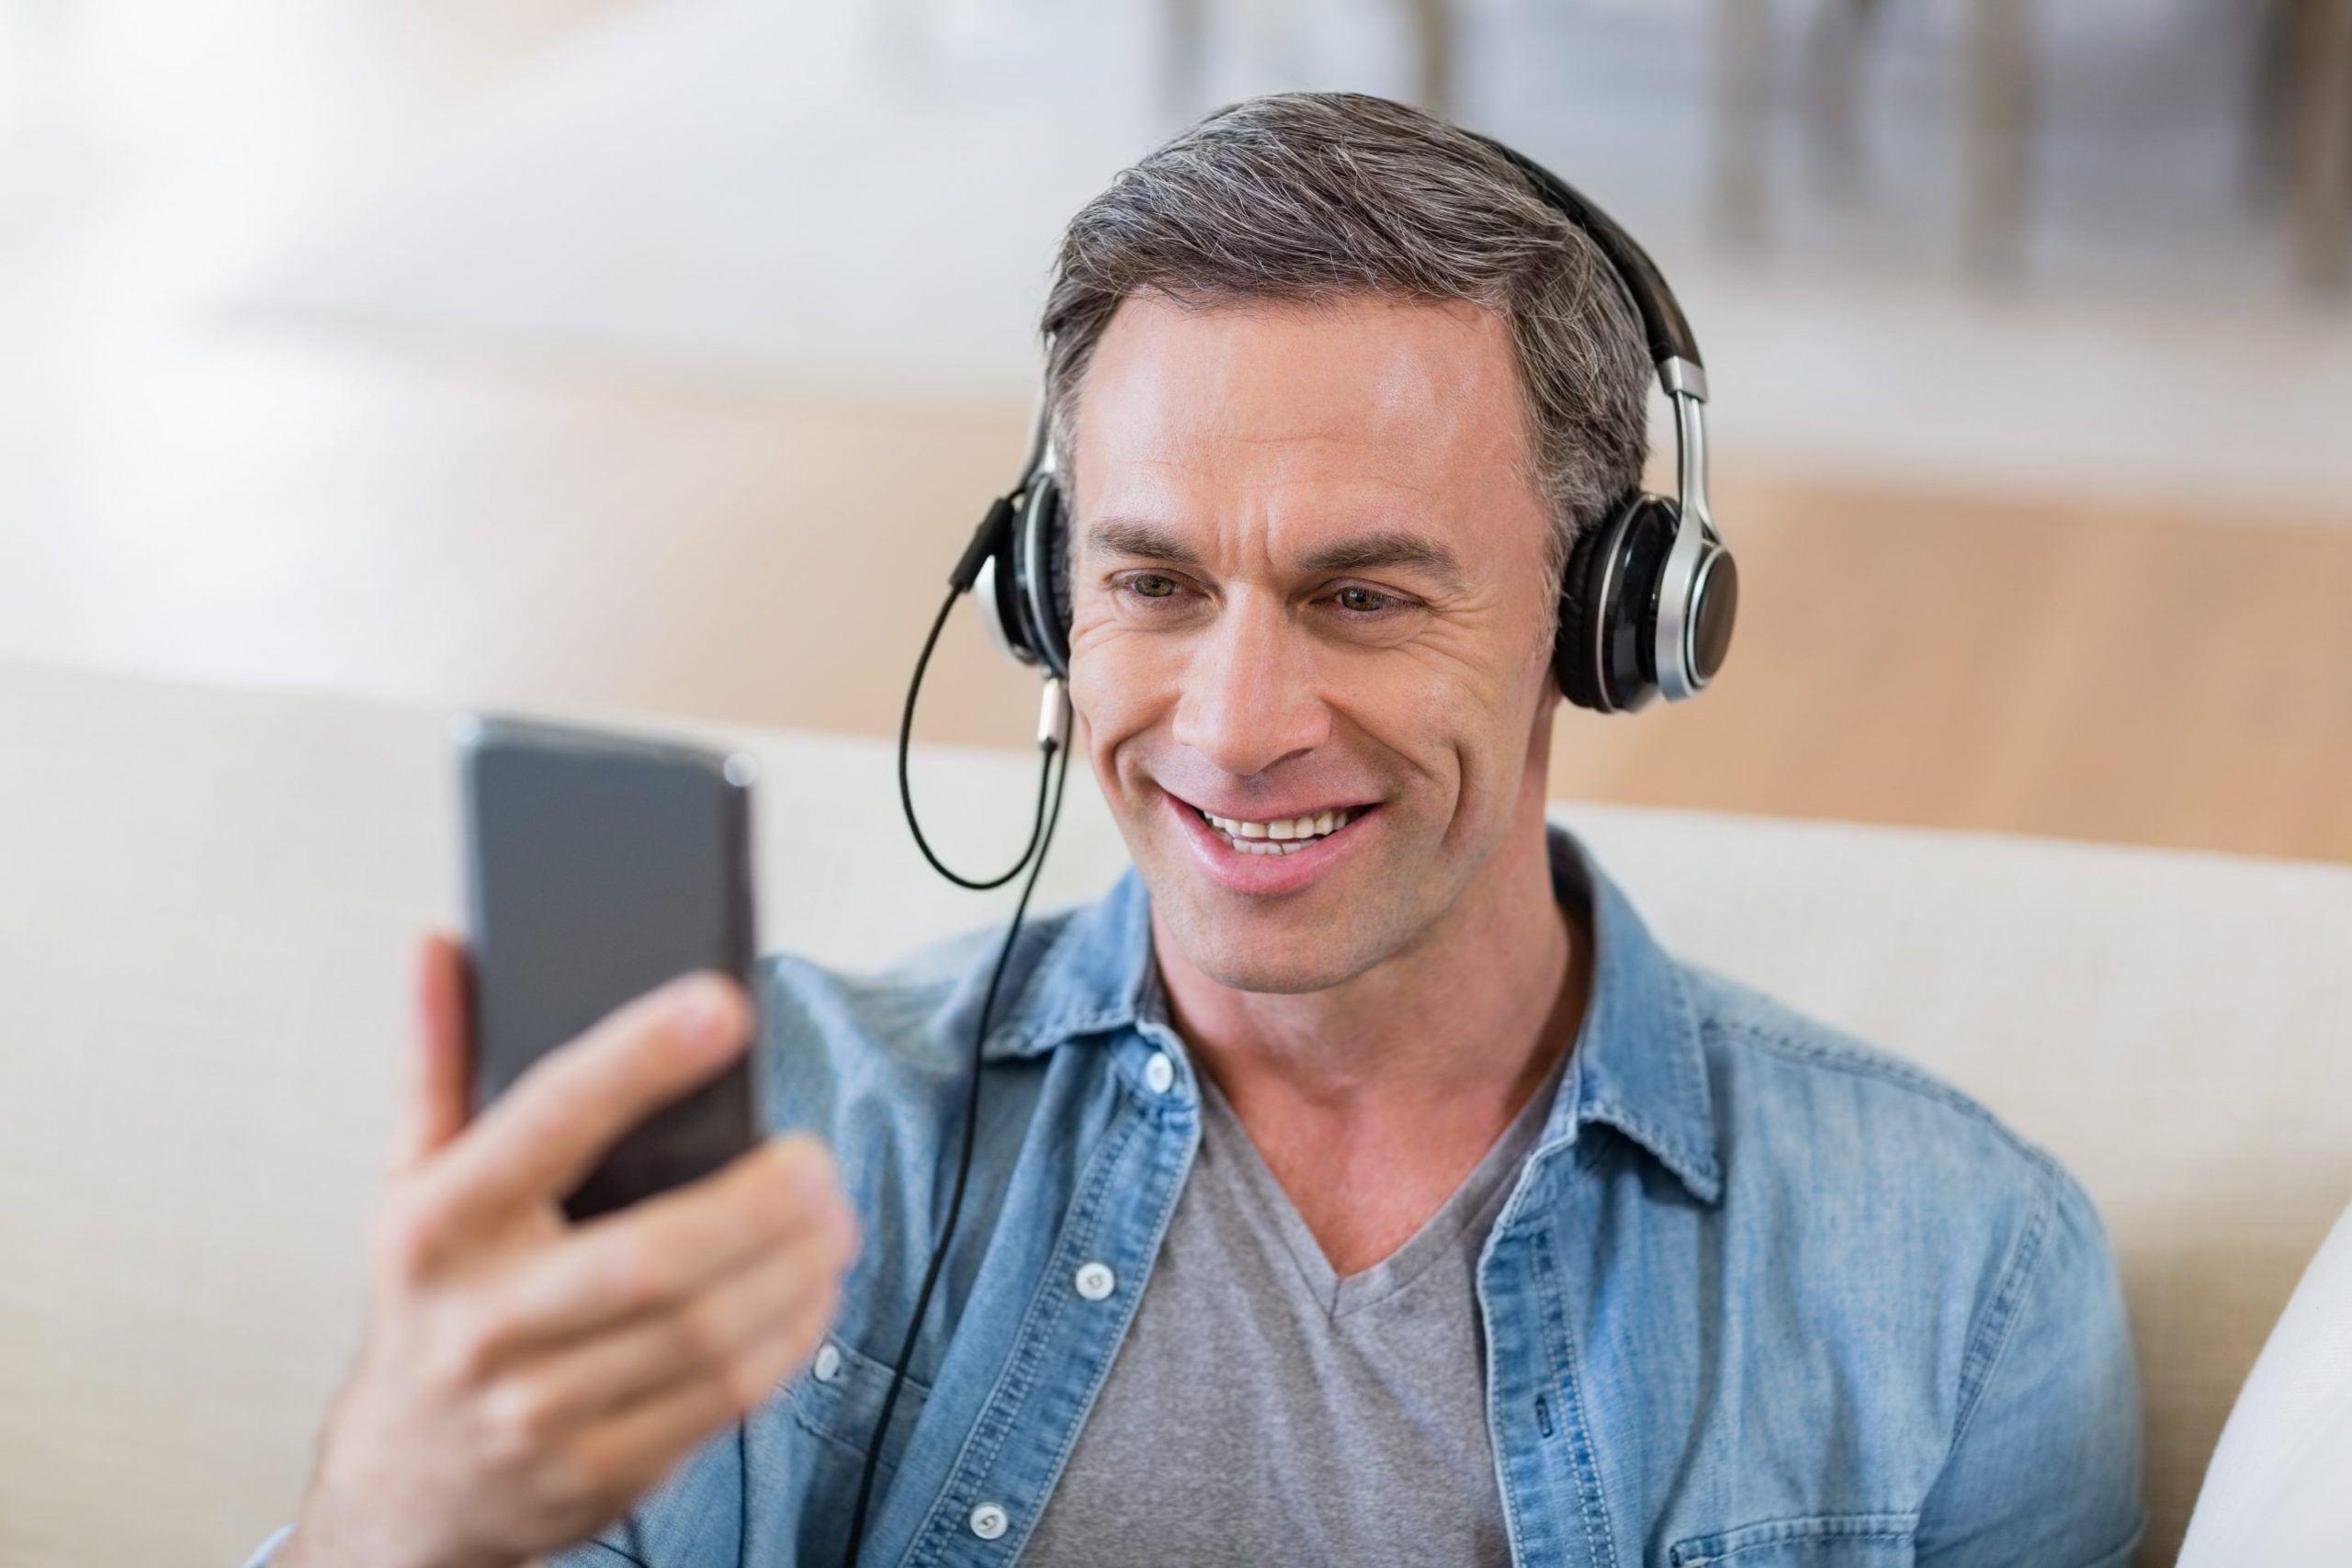 Kiedel man listening to music on headphones in living roo VFMS2RS scaled 1 scaled